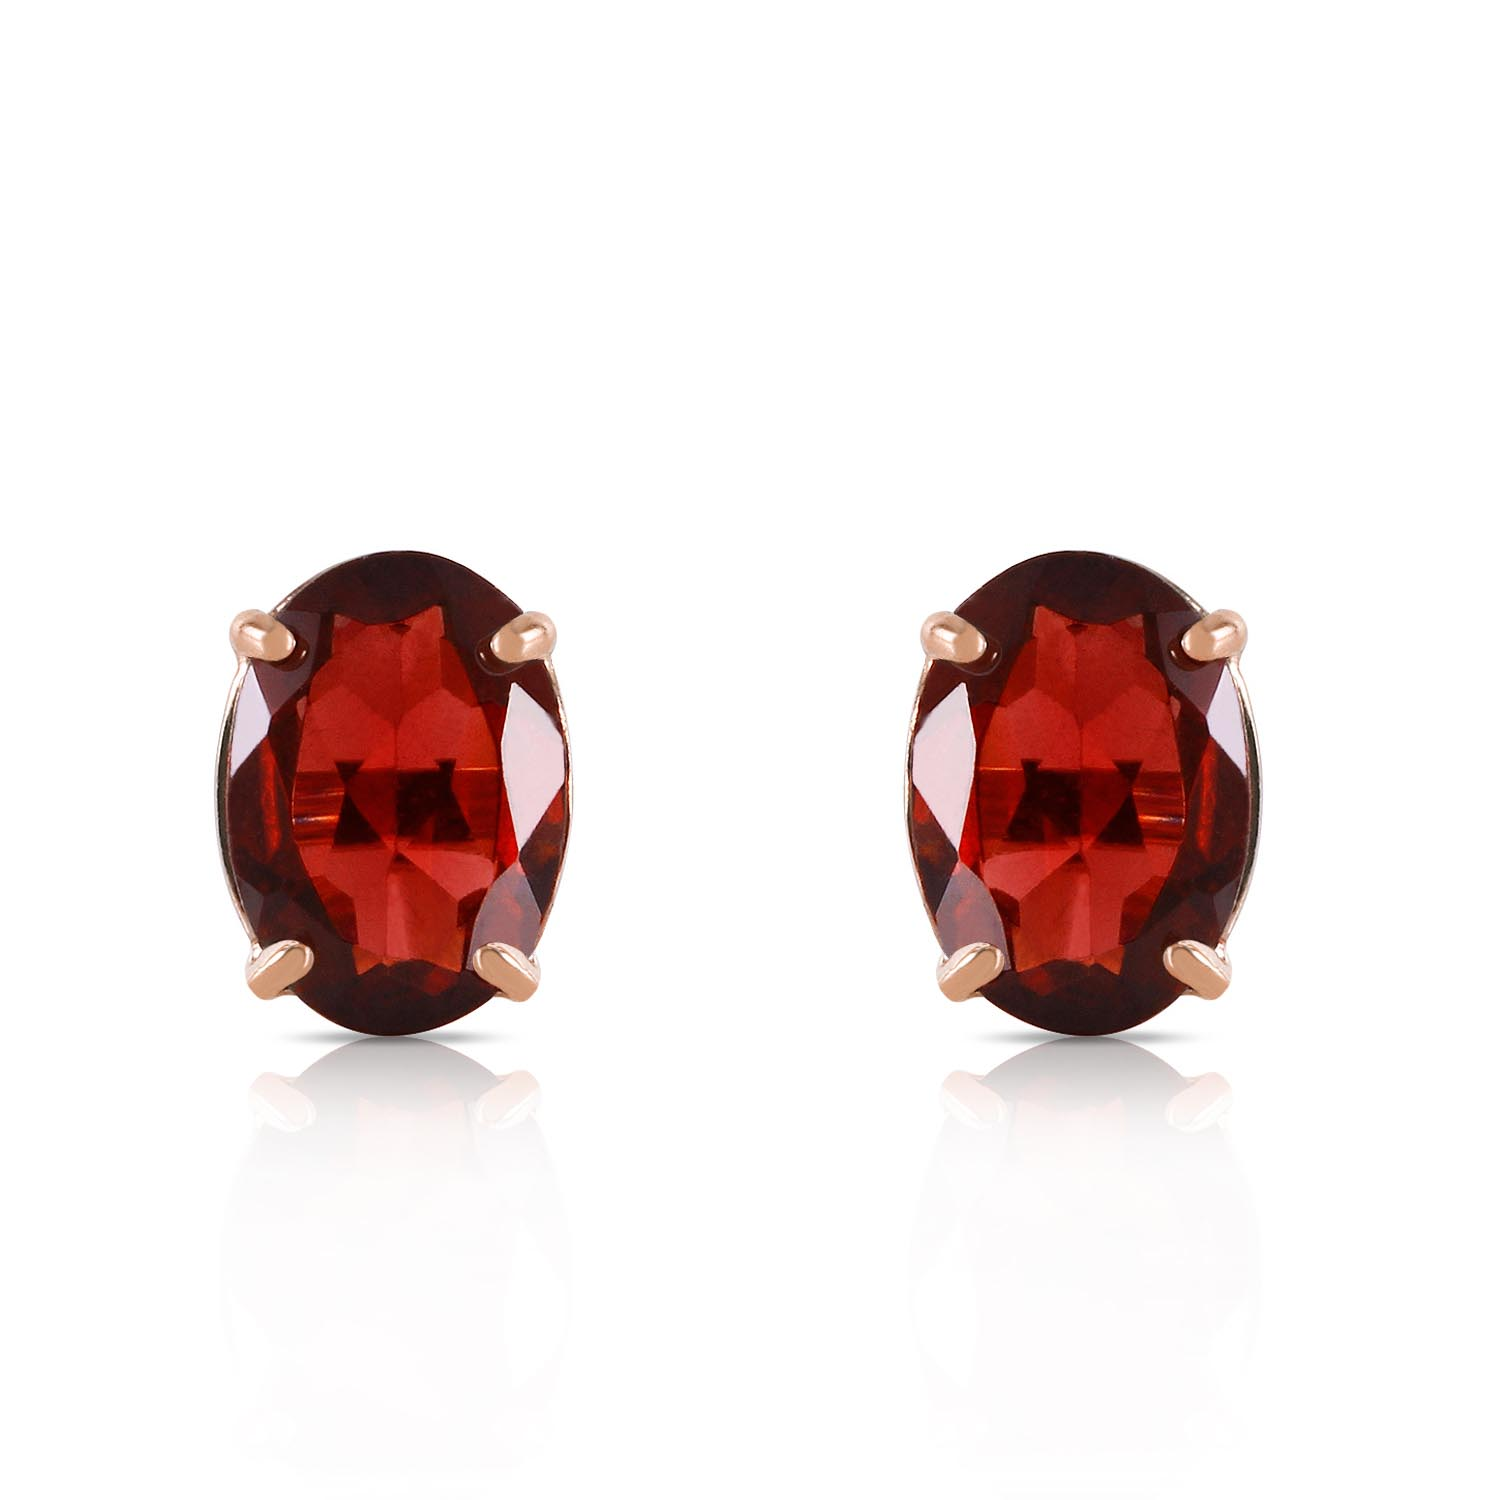 Garnet Stud Earrings 1.8ctw in 9ct Gold